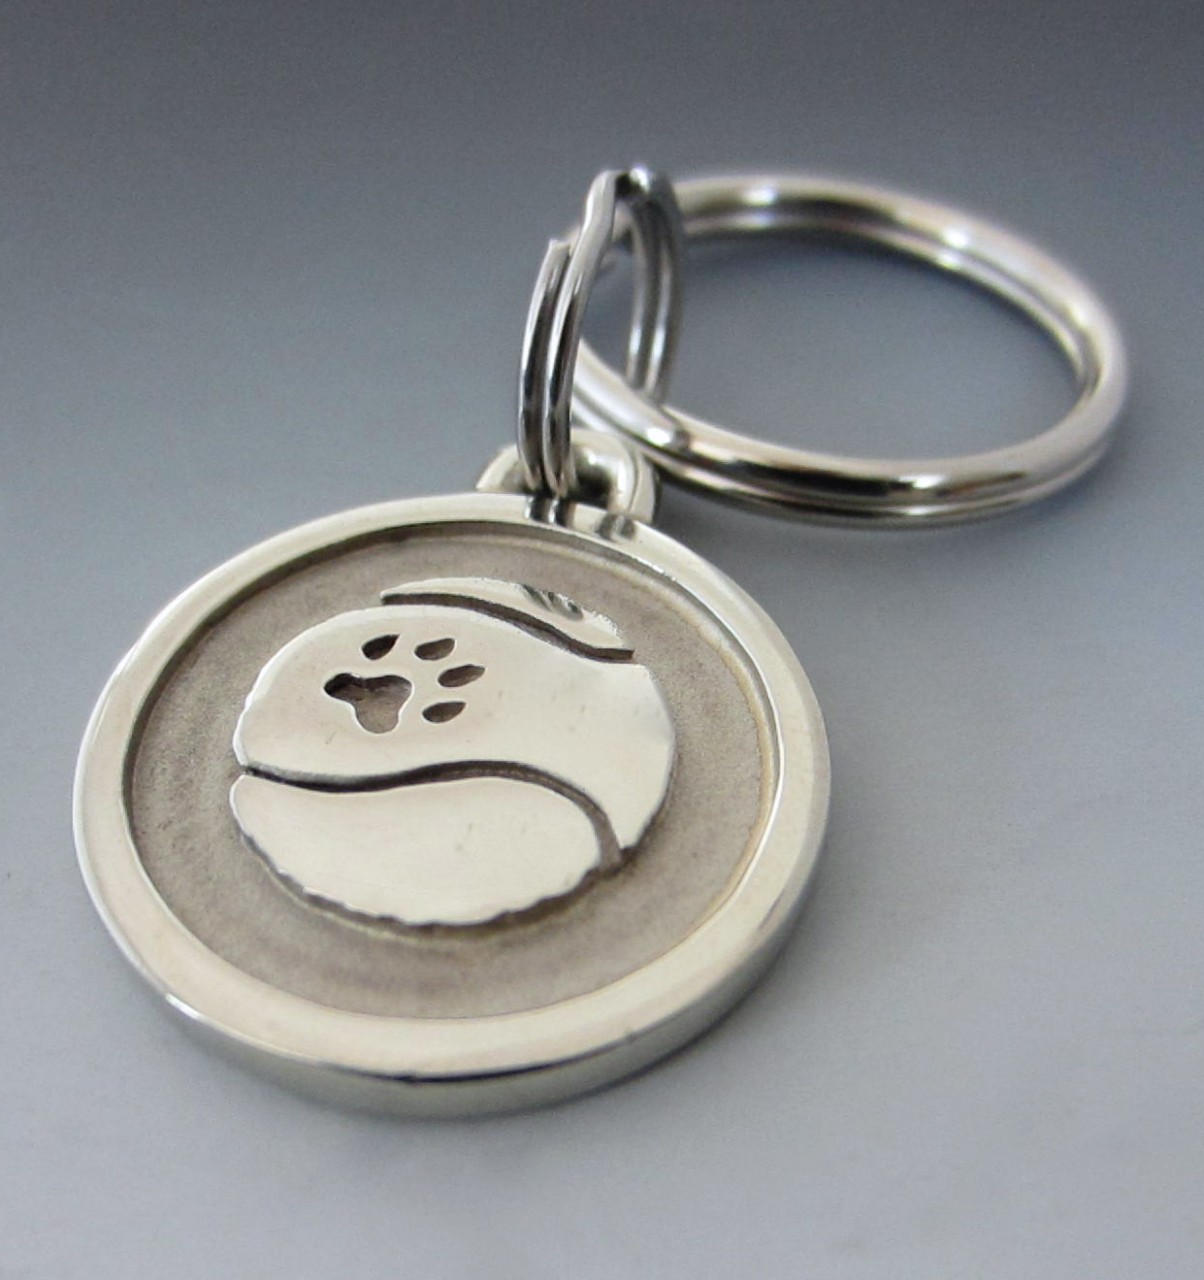 Small Stainless Steel Tennis Ball Pet Keychain